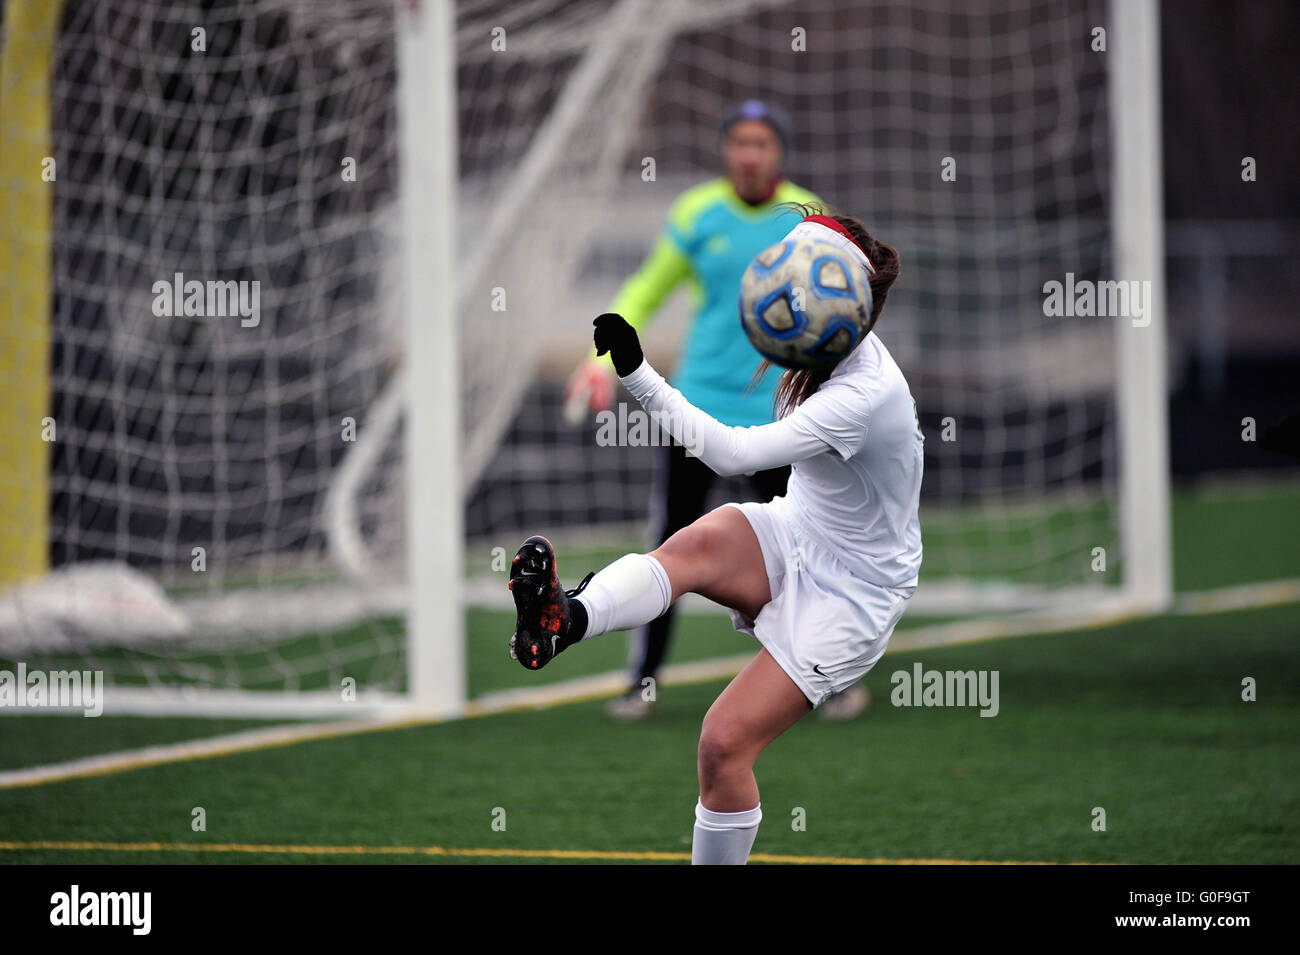 While clearing the ball out of harm's way near her own goal a player's identity is briefly obscured by her - Stock Image